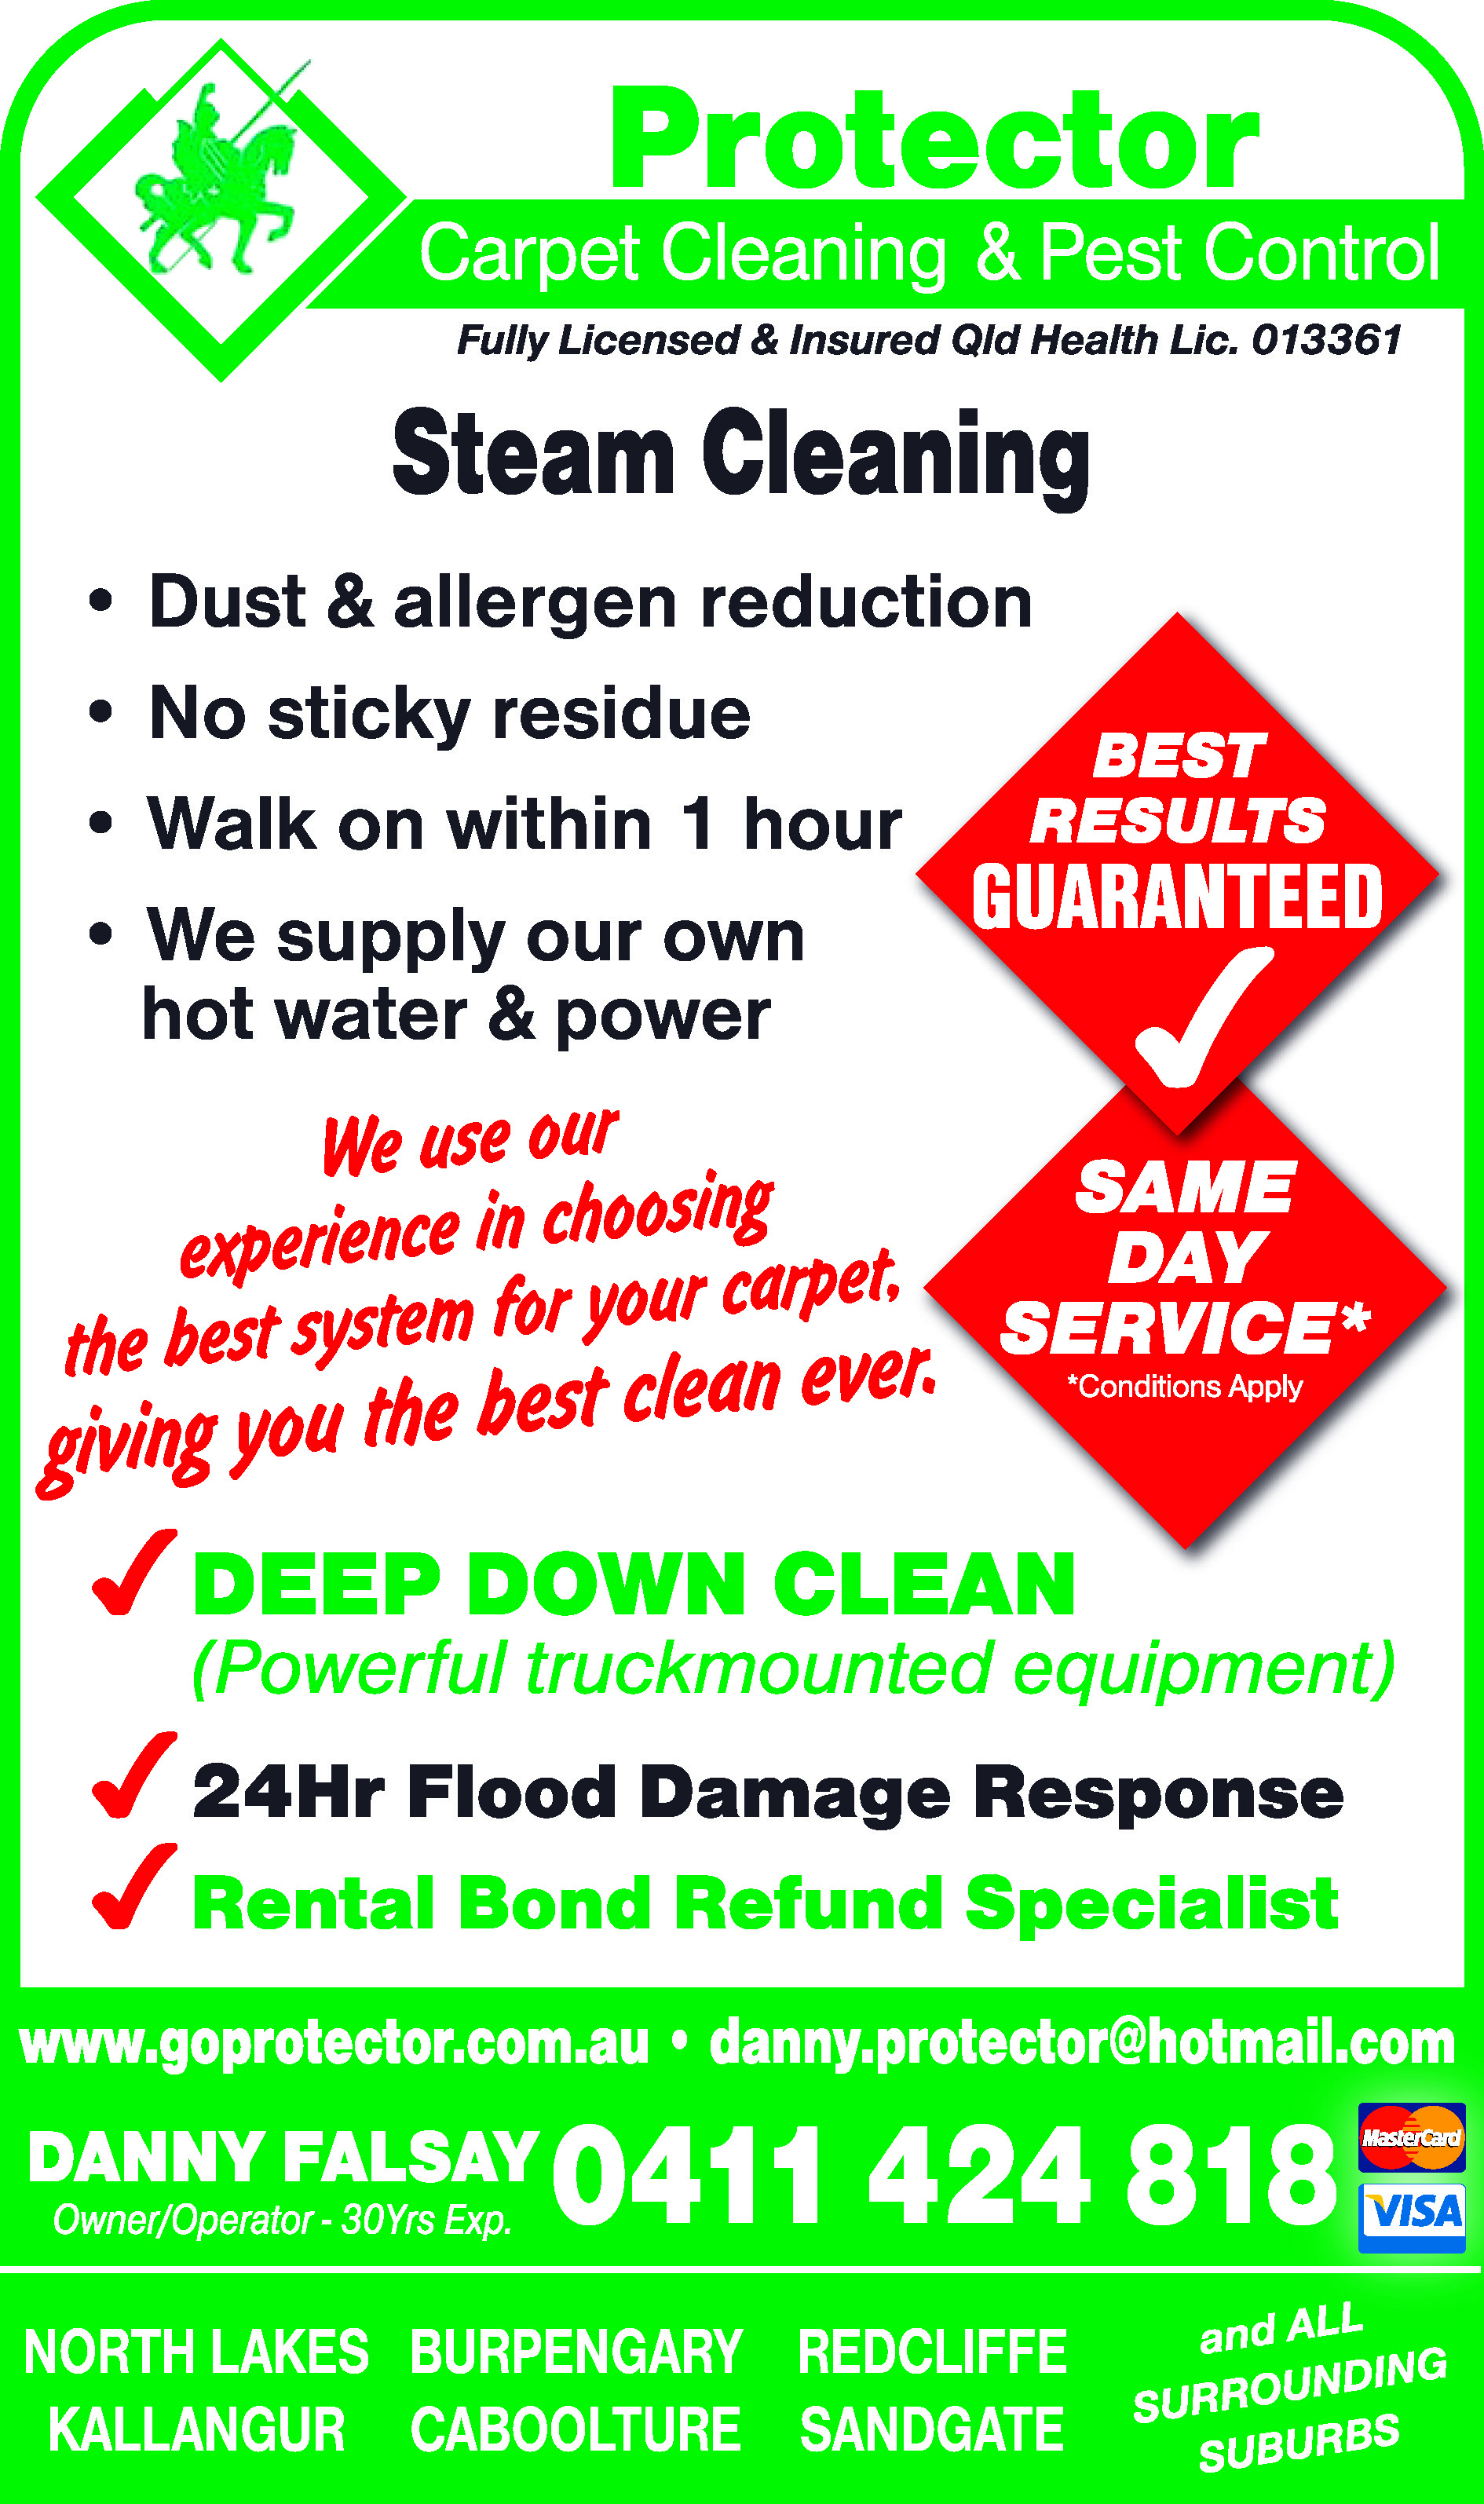 Protector Carpet Cleaning & Pest Control - Lounge Cleaning